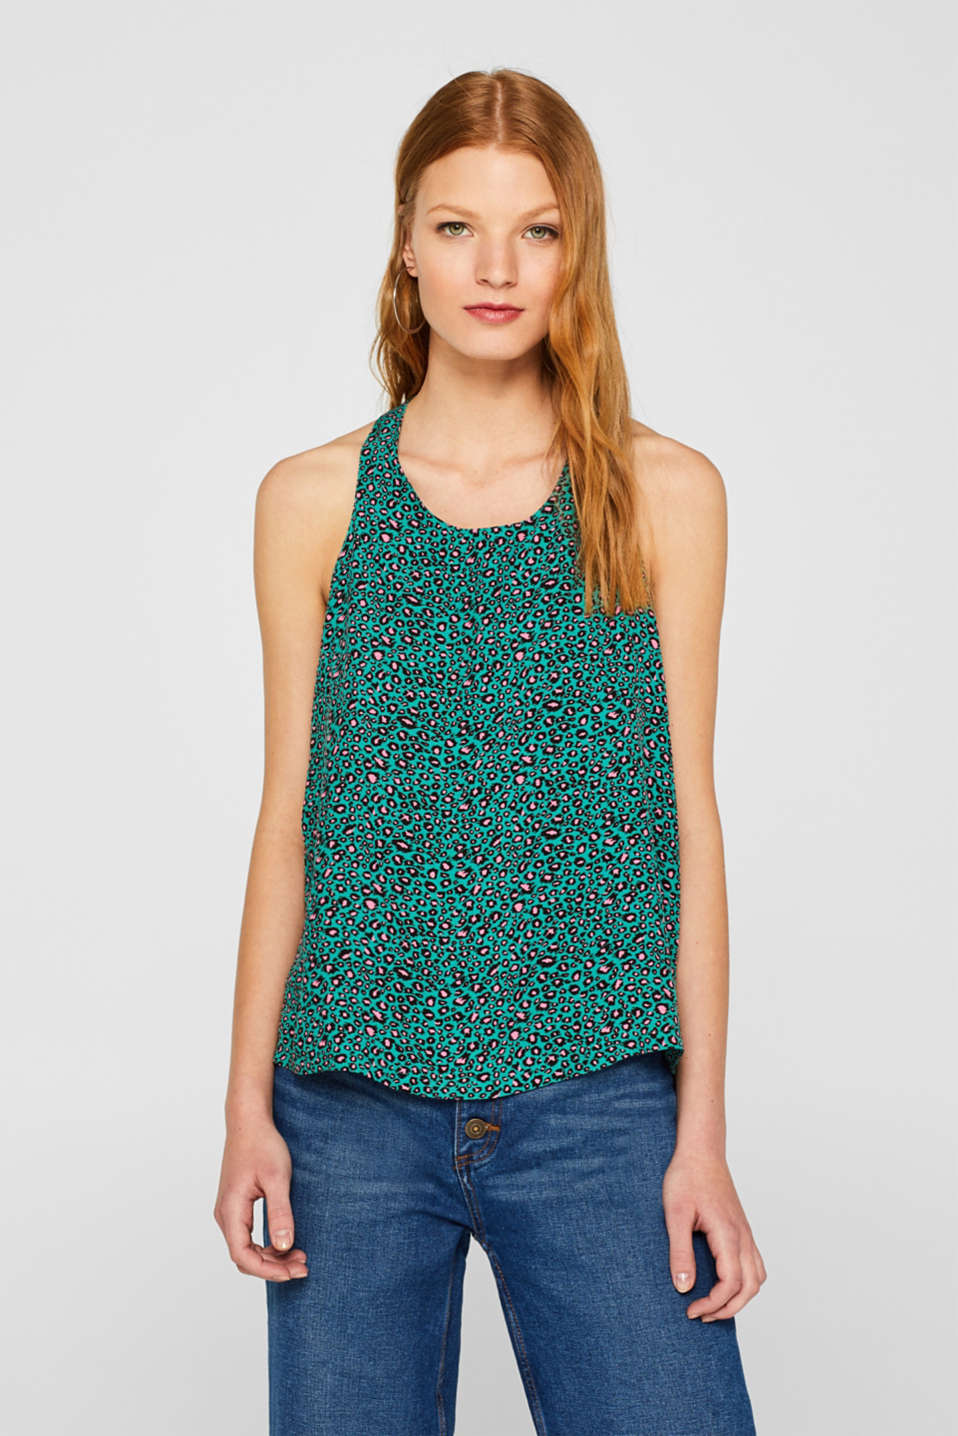 edc - Patterned blouse with a striking back neckline